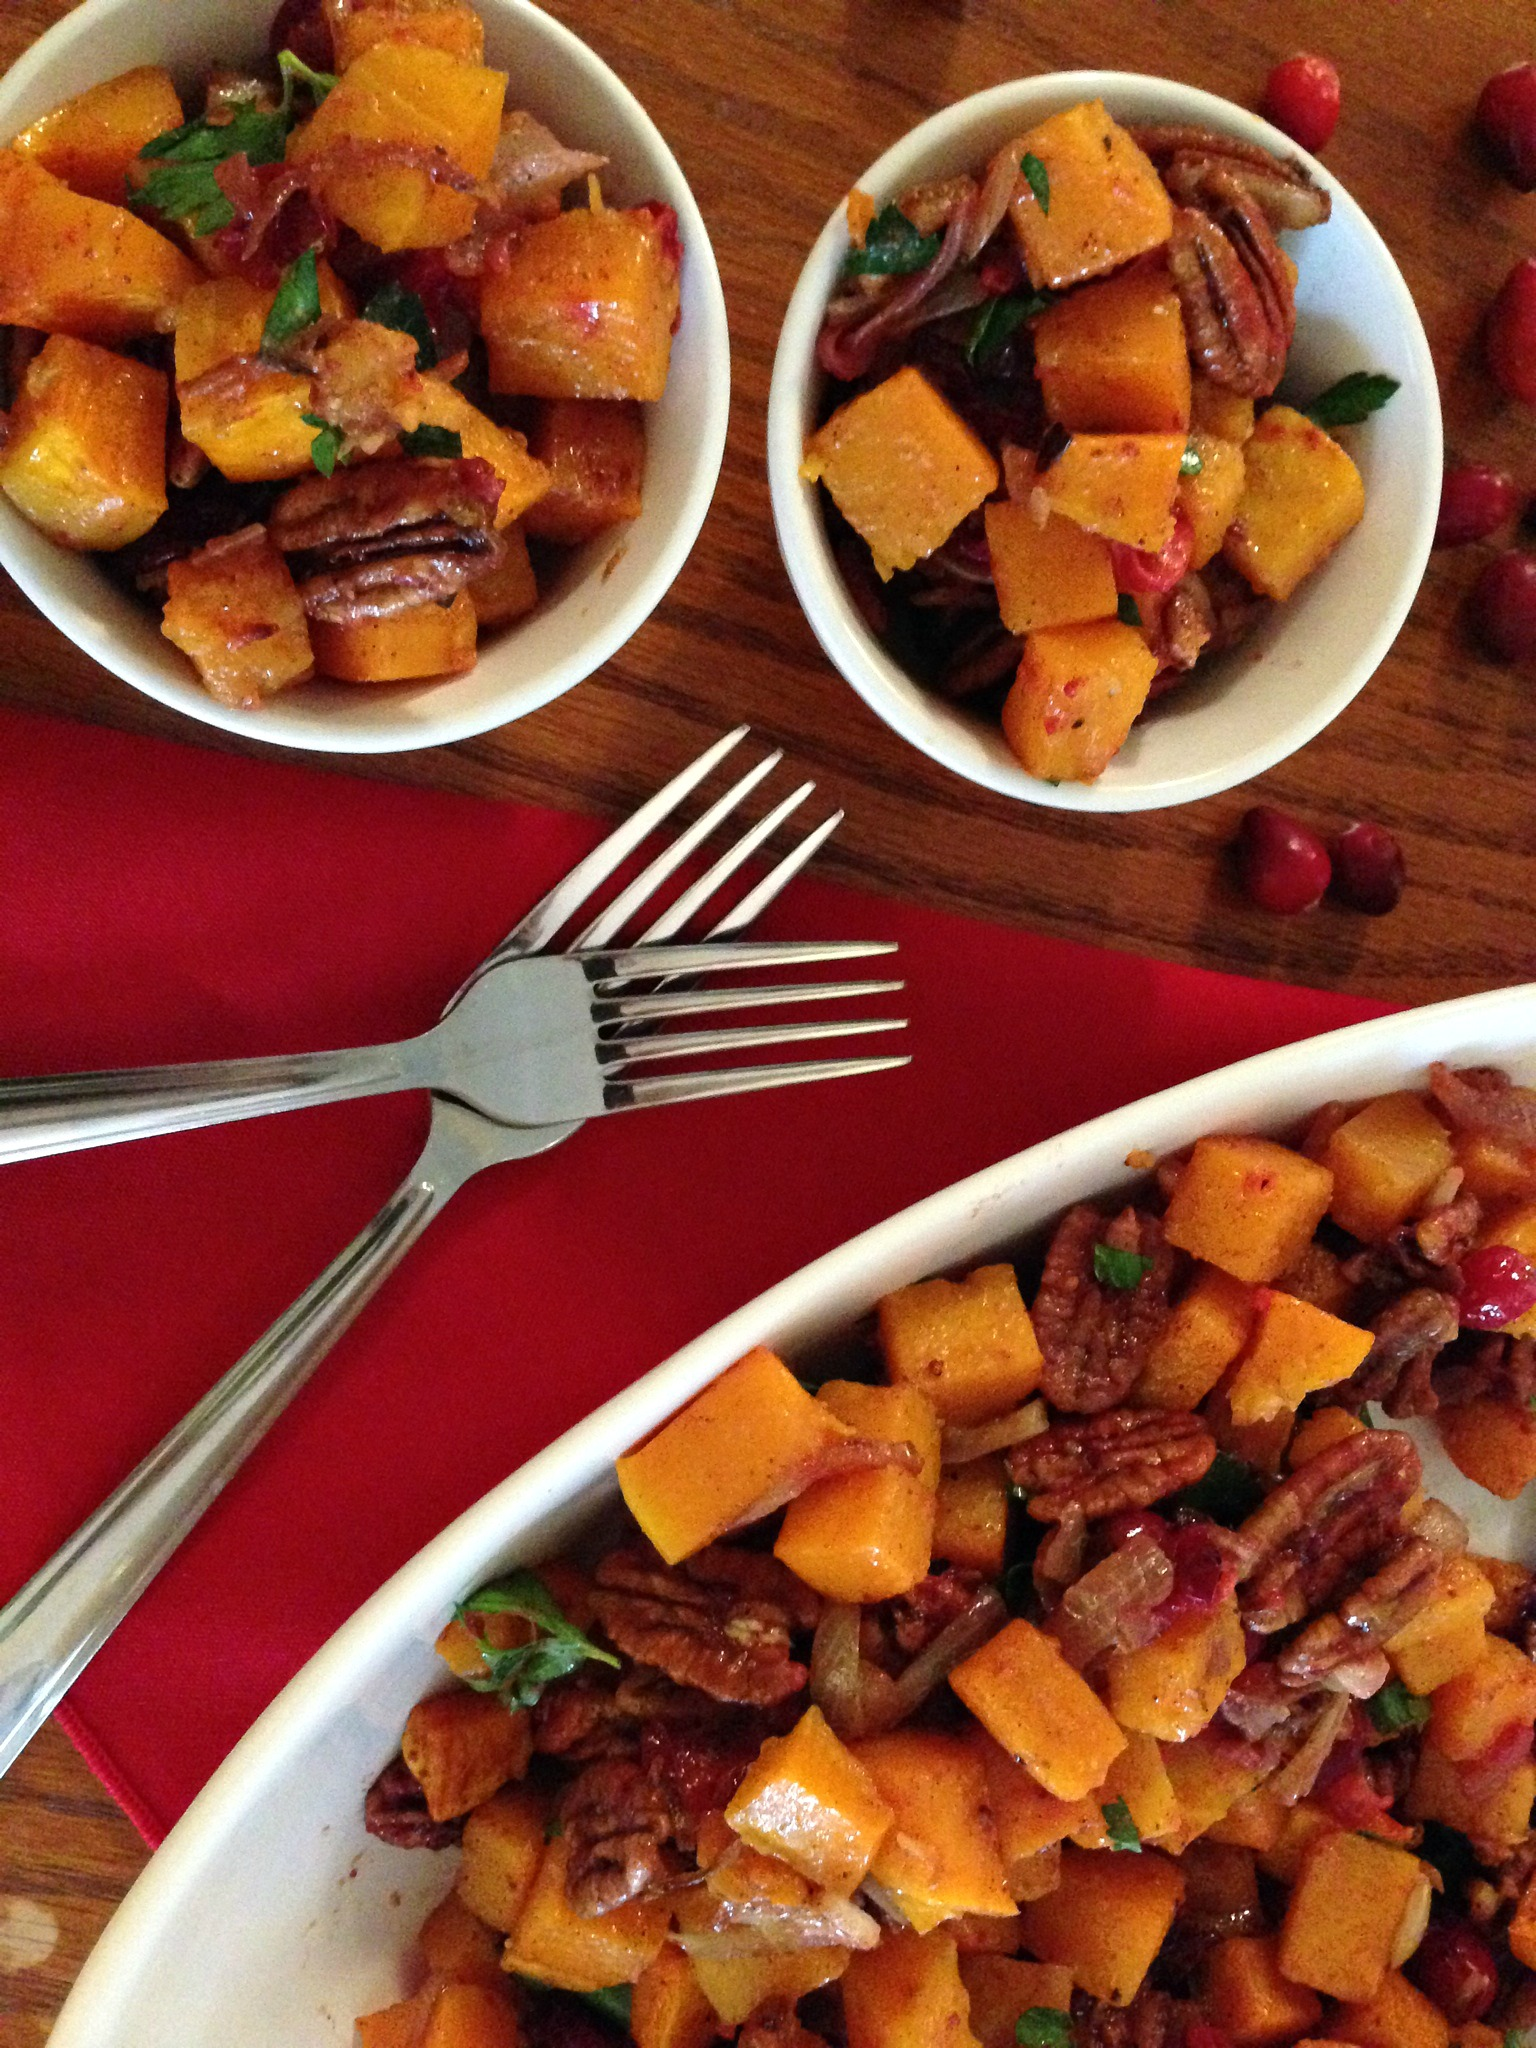 Roasted Butternut Squash with Cranberries & Glazed Pecans